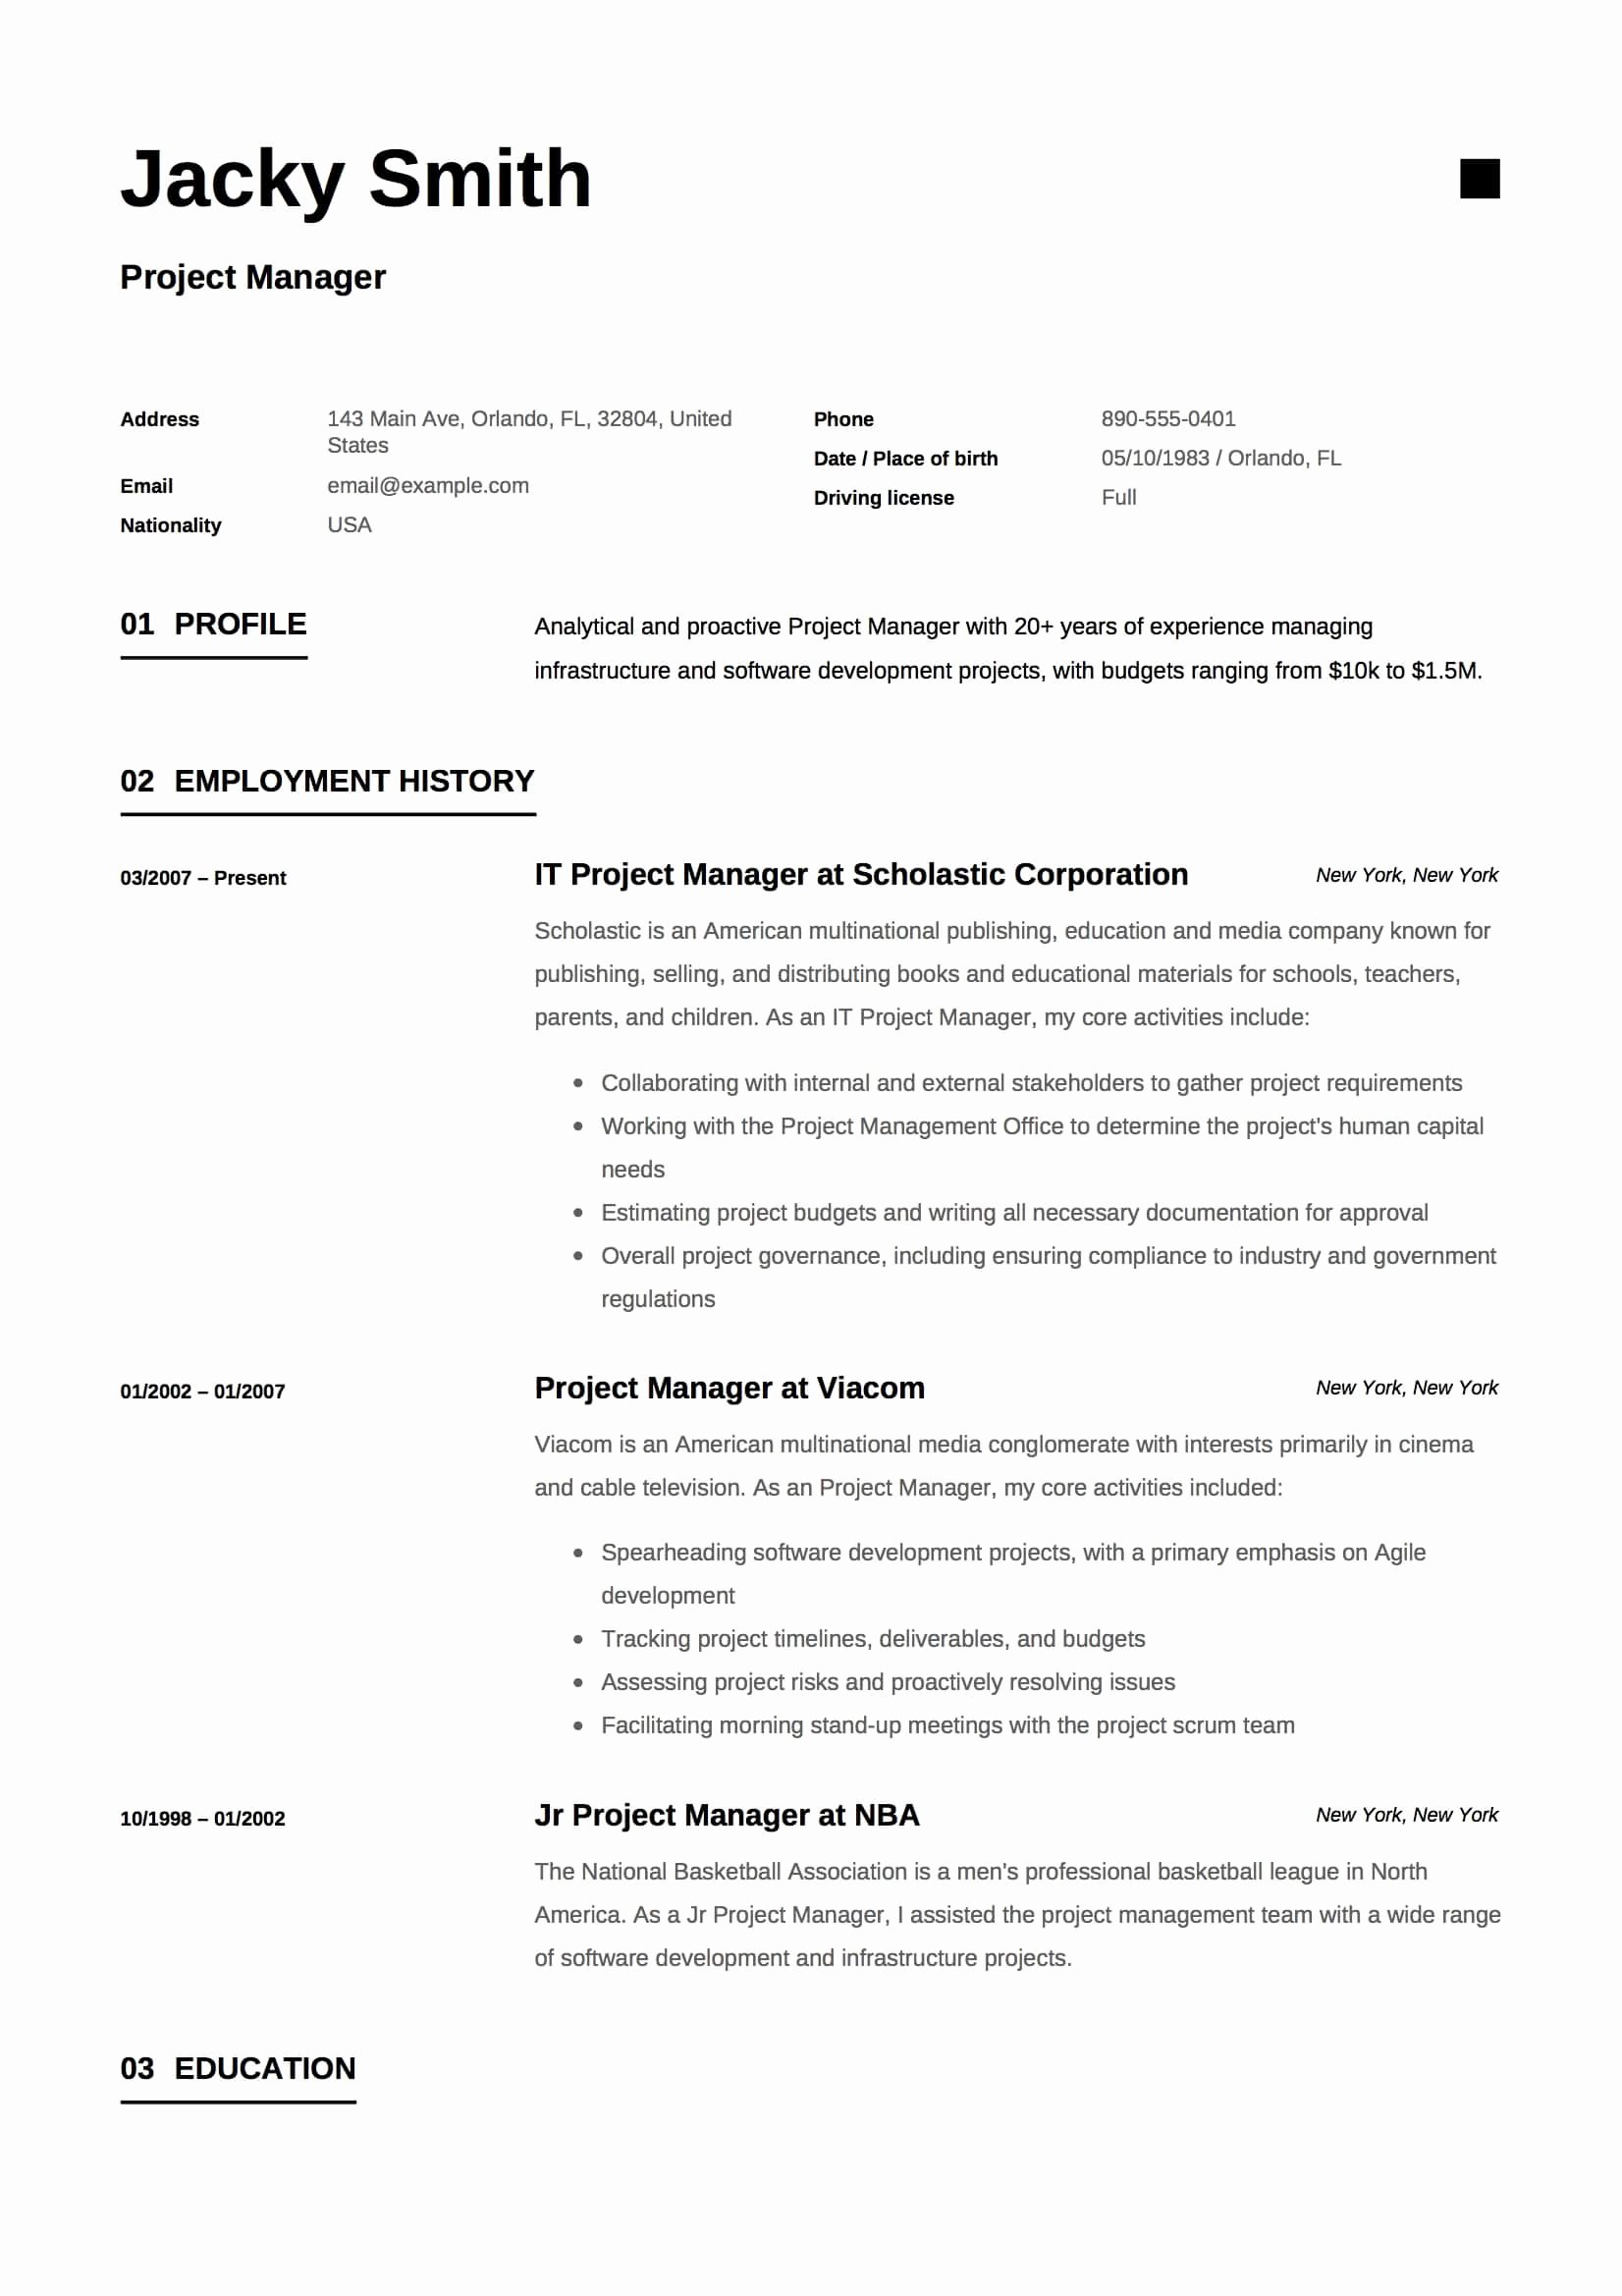 Project Manager Resume Pdf Best Of Project Manager Resume & Full Guide